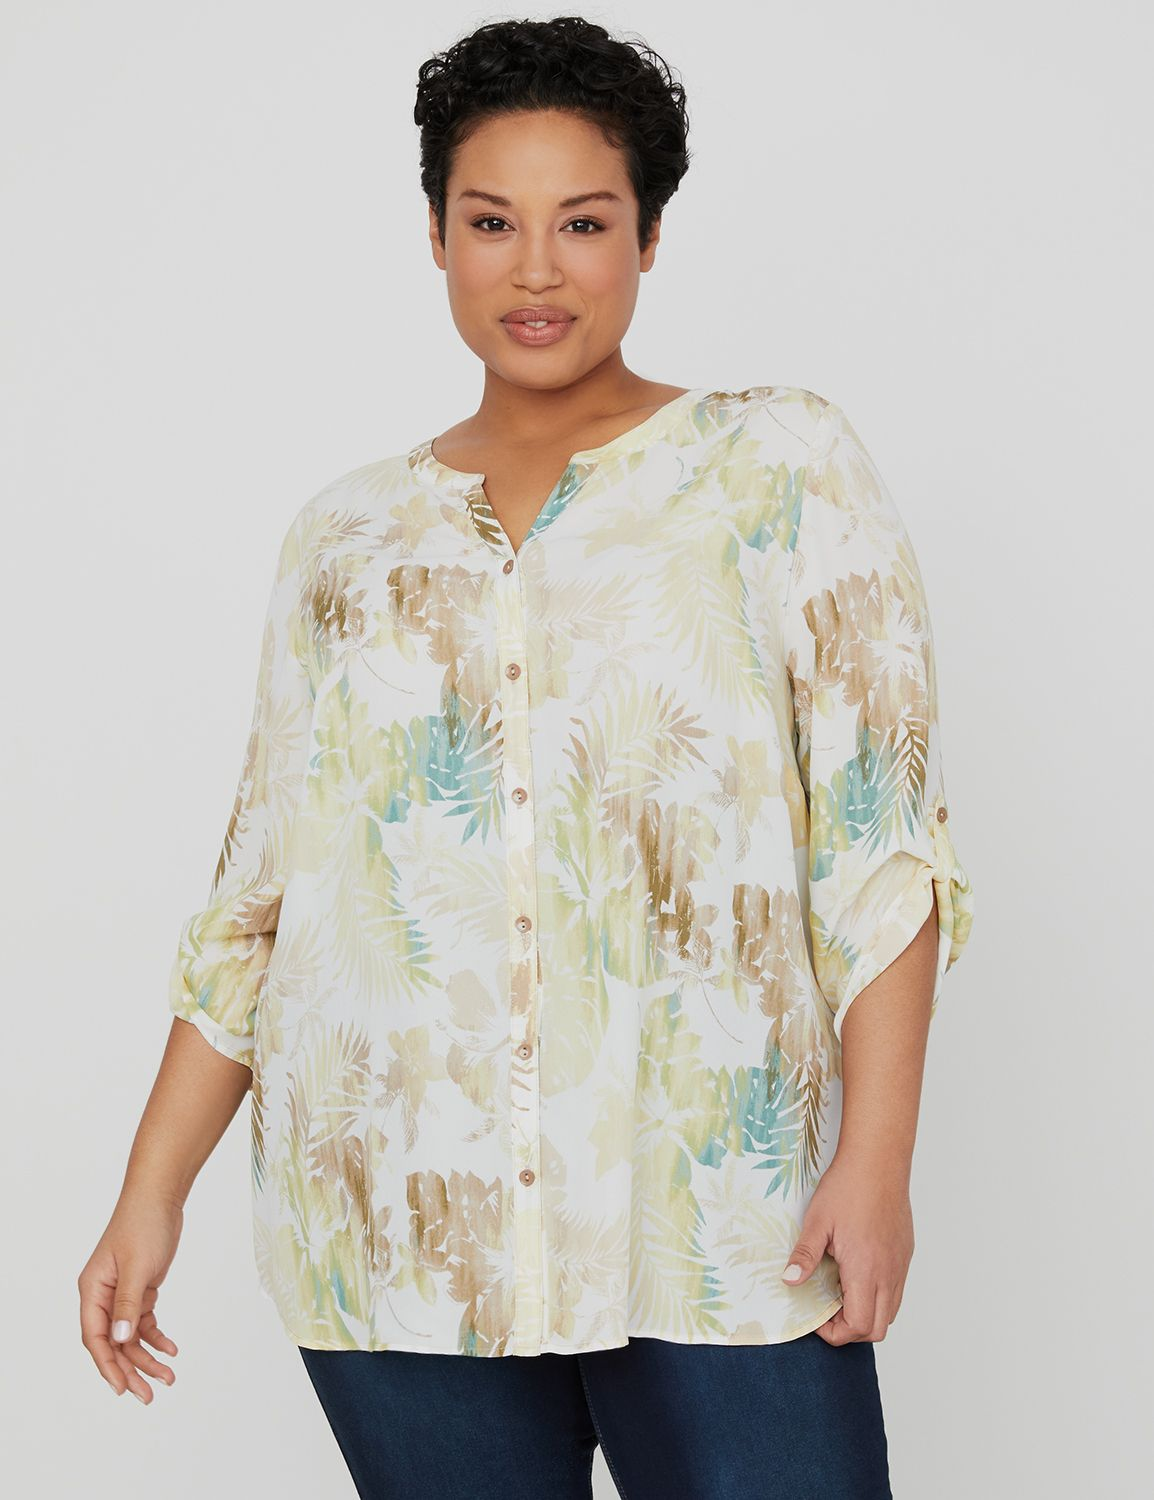 Canyon Shade Buttonfront Top 1090503 Opaque GGT Bttn Front Blous MP-300103548